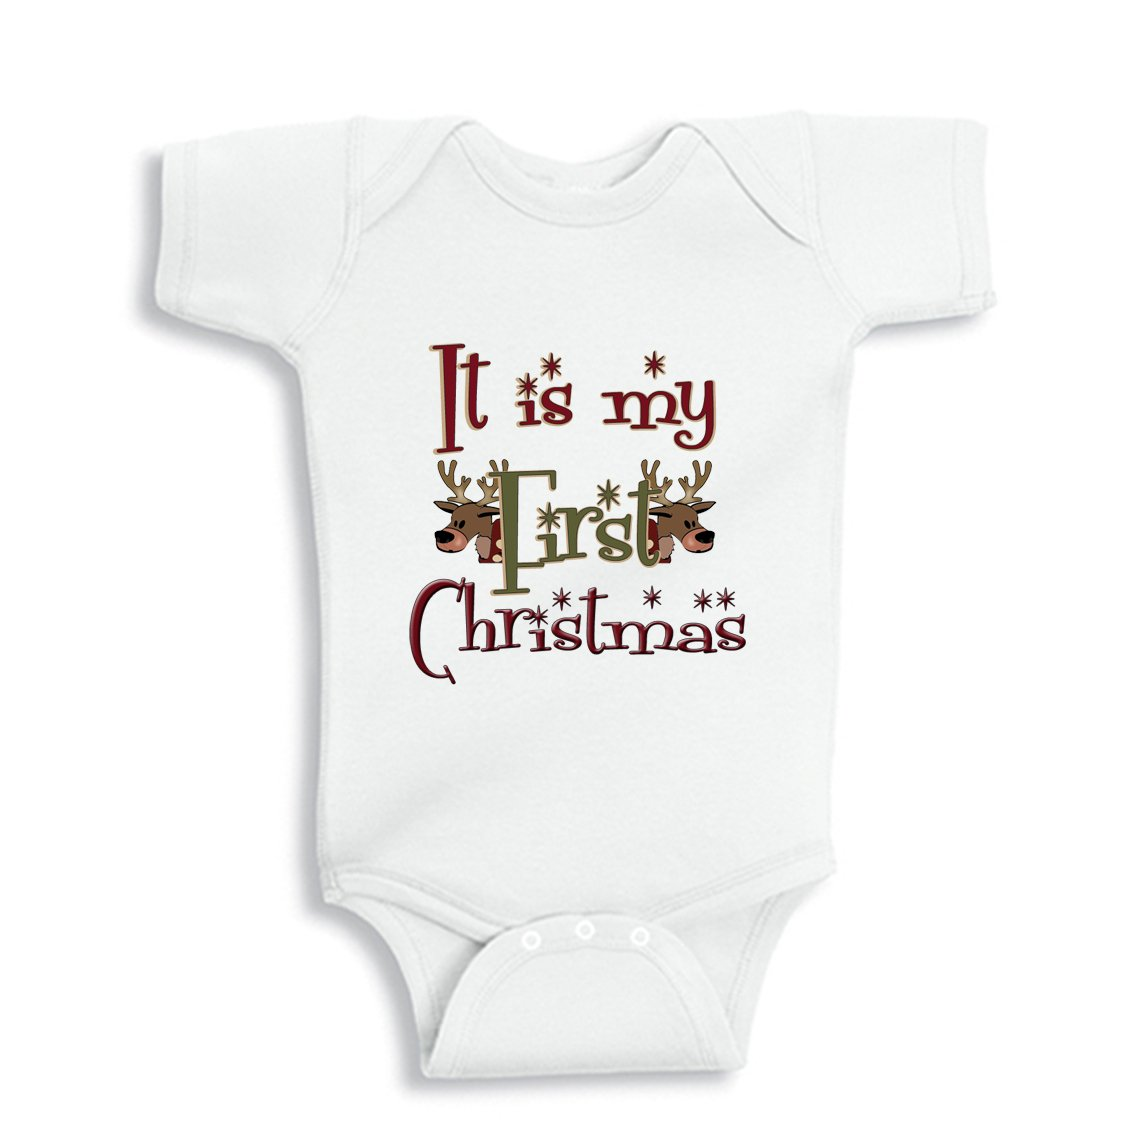 'Tis the onesie season. Find this Pin and more on Funny Christmas Onesies by Vulgar Baby. The baby version of an ugly Christmas sweater. 27 Onesies Your Baby Needs This Holiday Season This perfect onesie for when you get your tree.